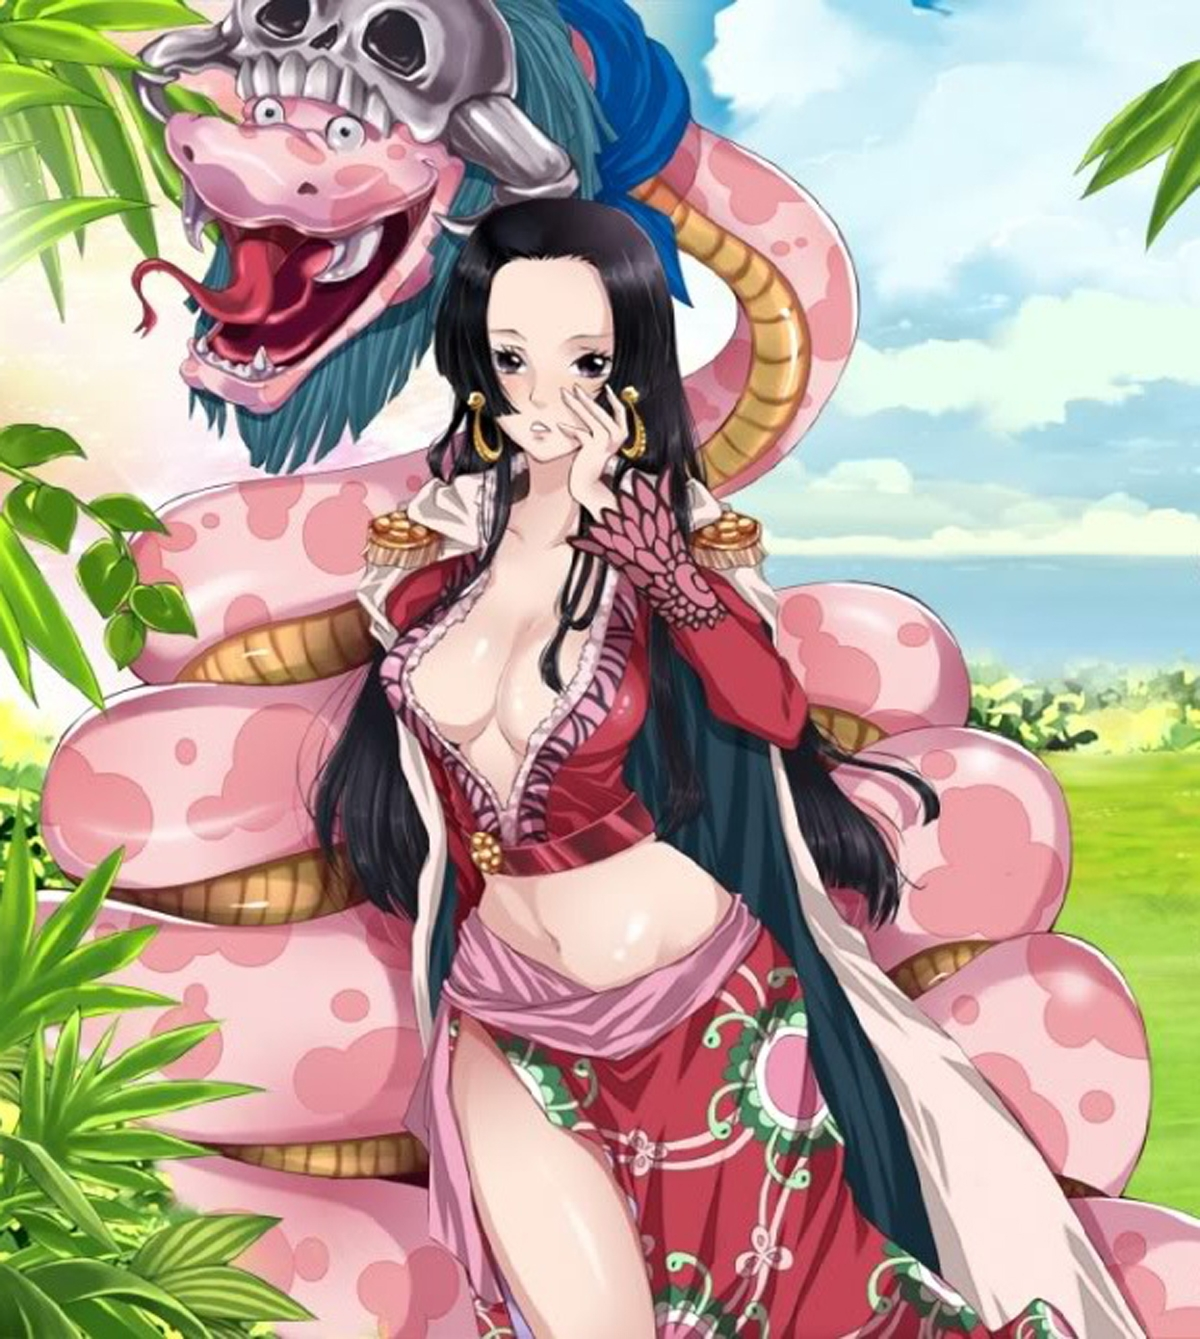 Toon sex pic ##00013062070 boa hancock breasts cape cleavage epaulettes highres one piece salome (one piece) skull snake